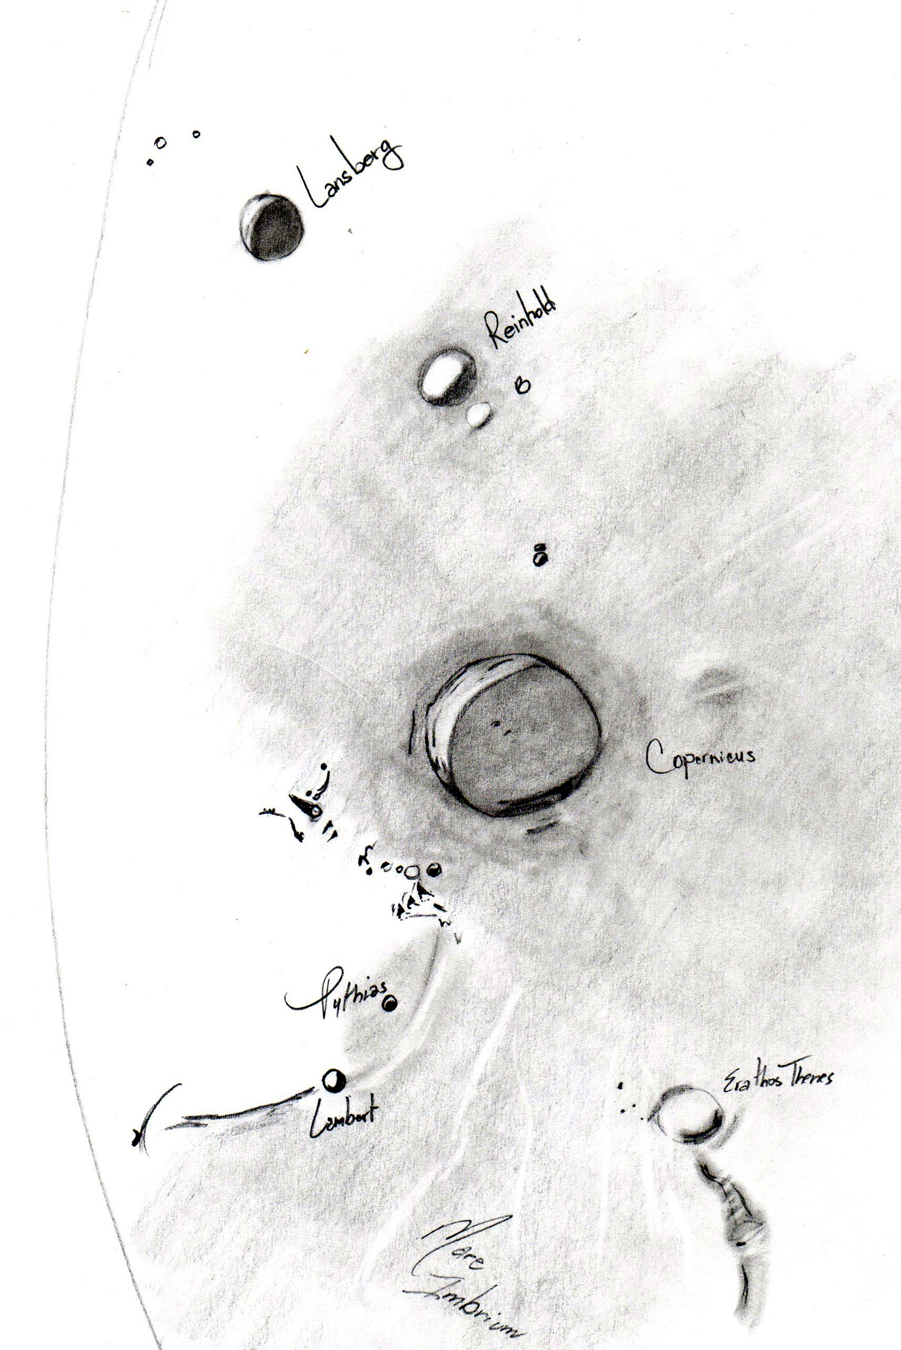 Sketch of Mare Imbrium and Copernicus